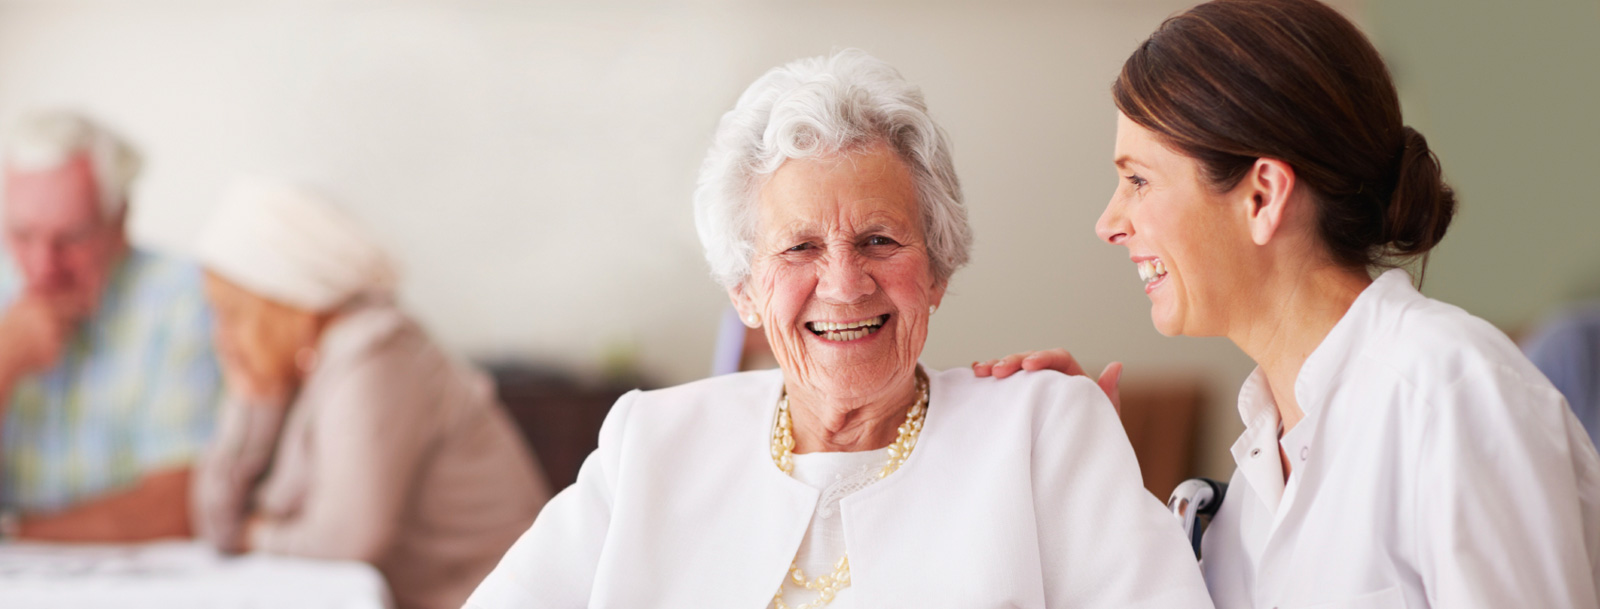 Skilled nursing at the senior facility